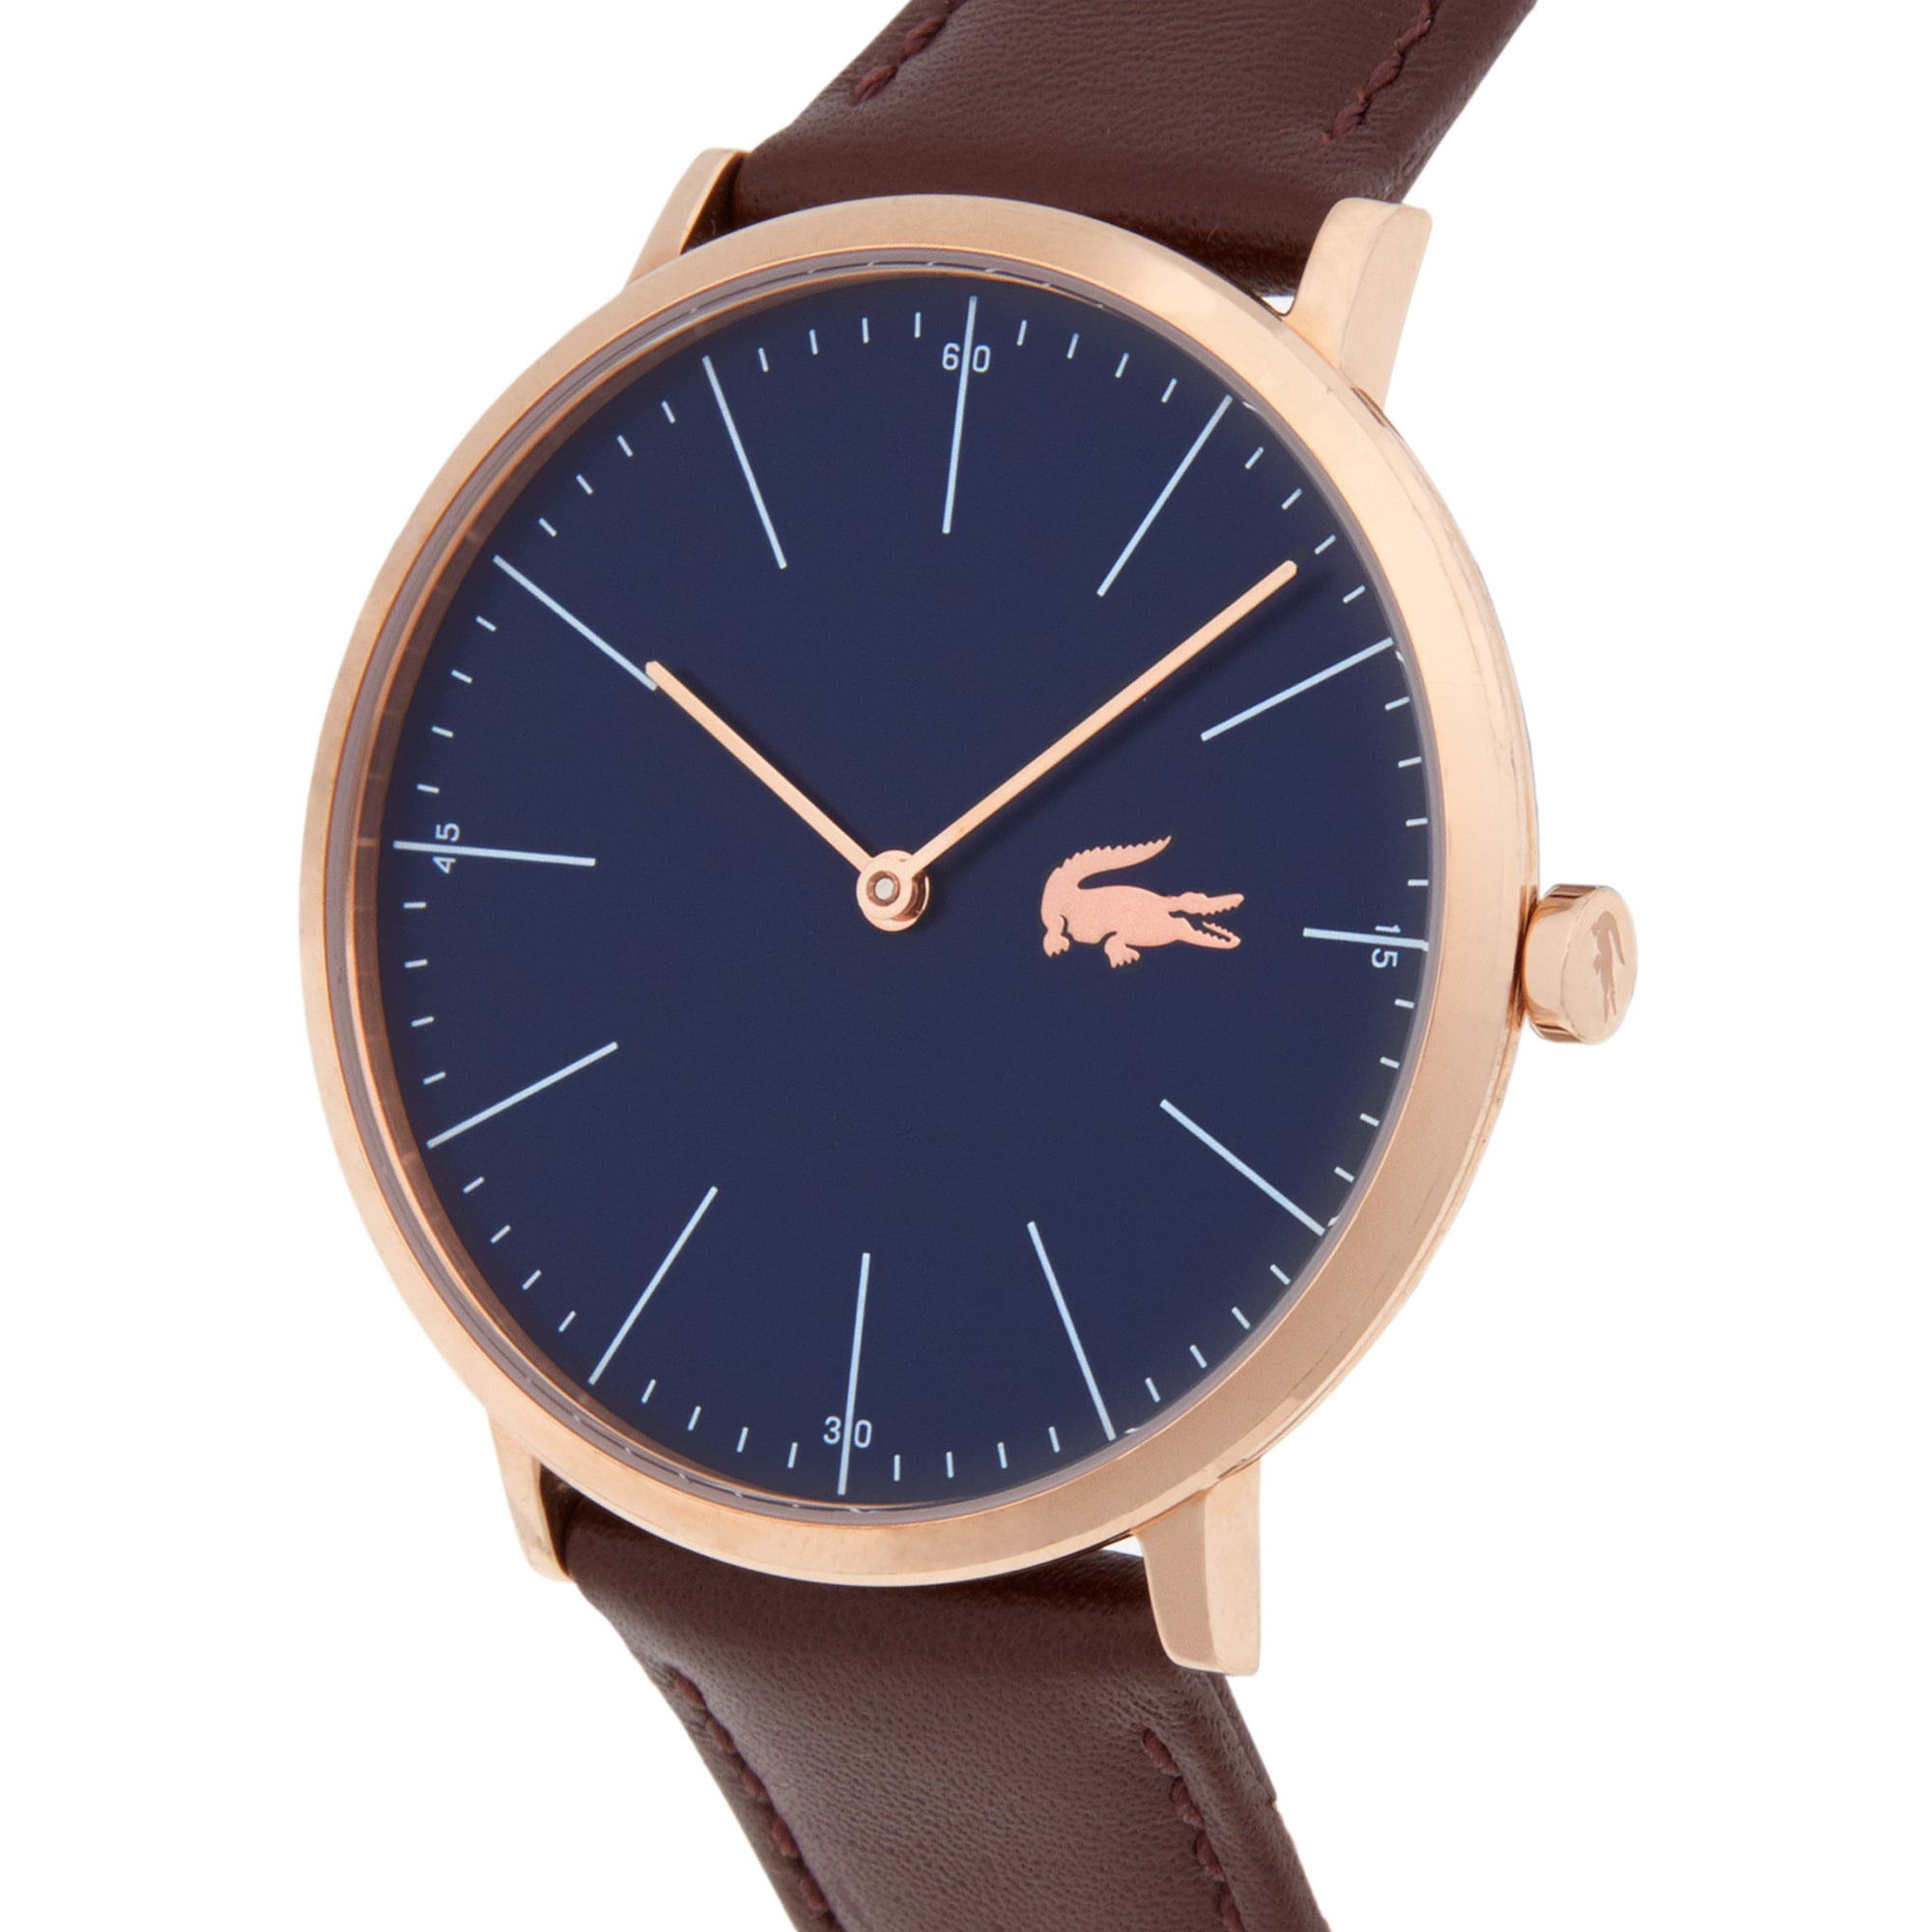 Lacoste Moon Watch Extra-slim blue - brown leather strap